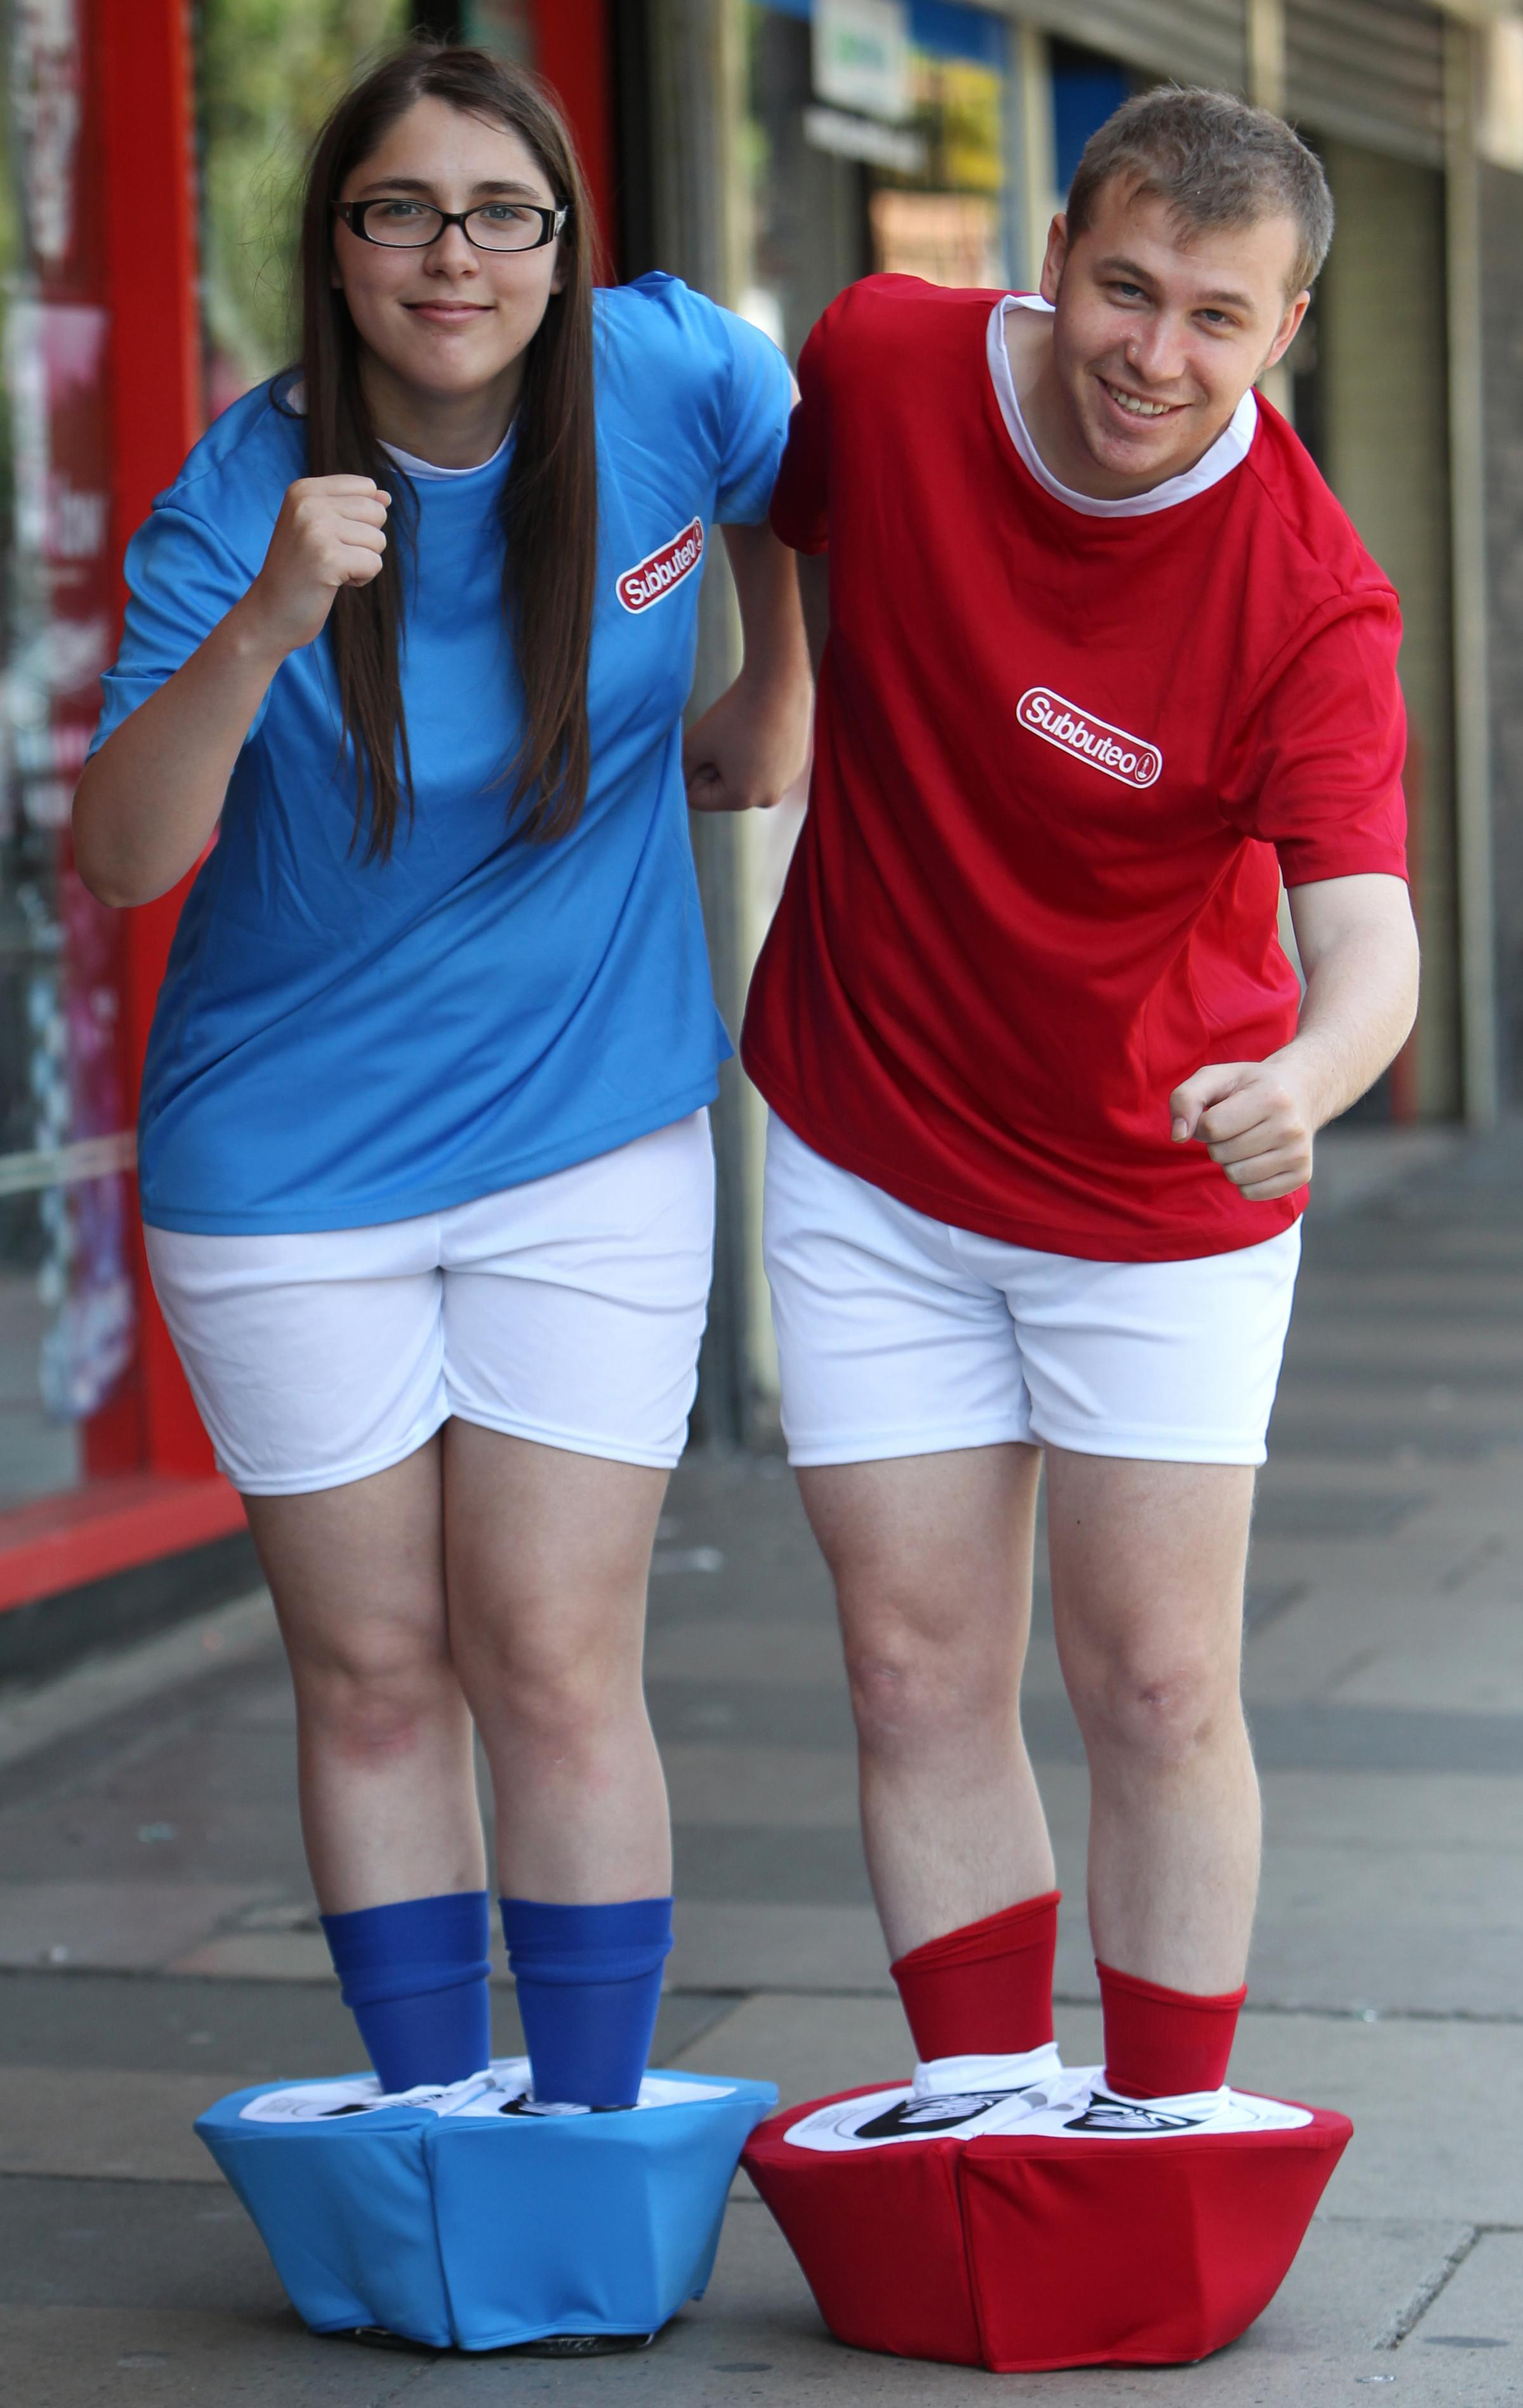 Hollywood Just For Fun's Laura Zamburlini and Daily Echo reporter Michael Carr dress up as Uruguay and England Subbuteo figures respectively